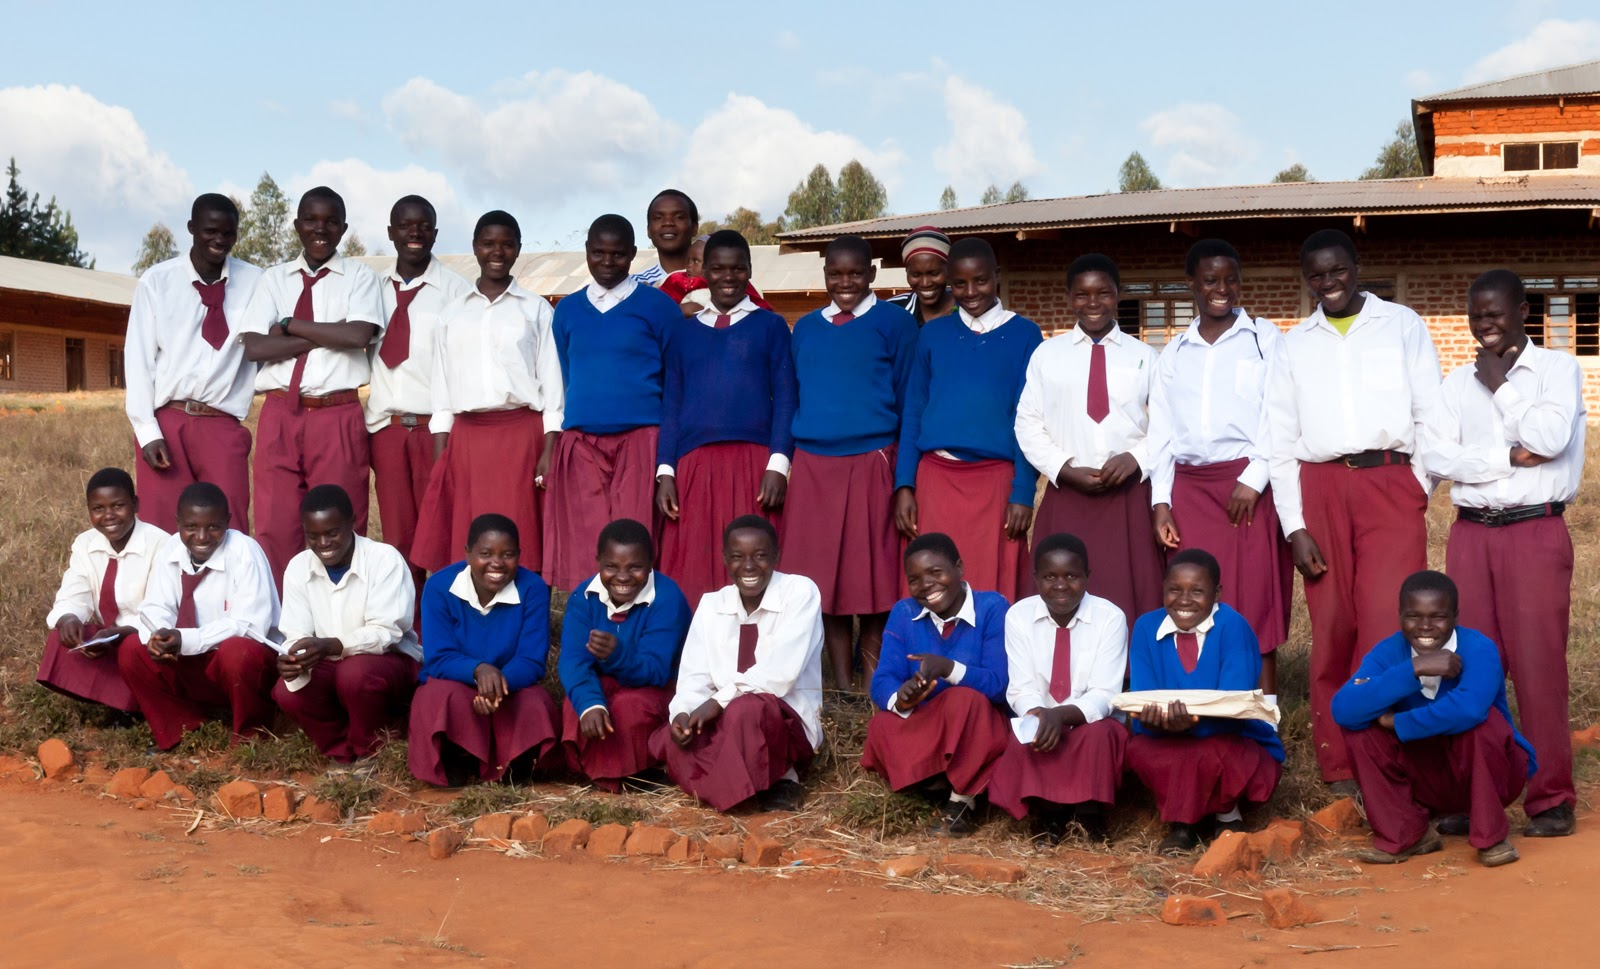 Students taking a group photo